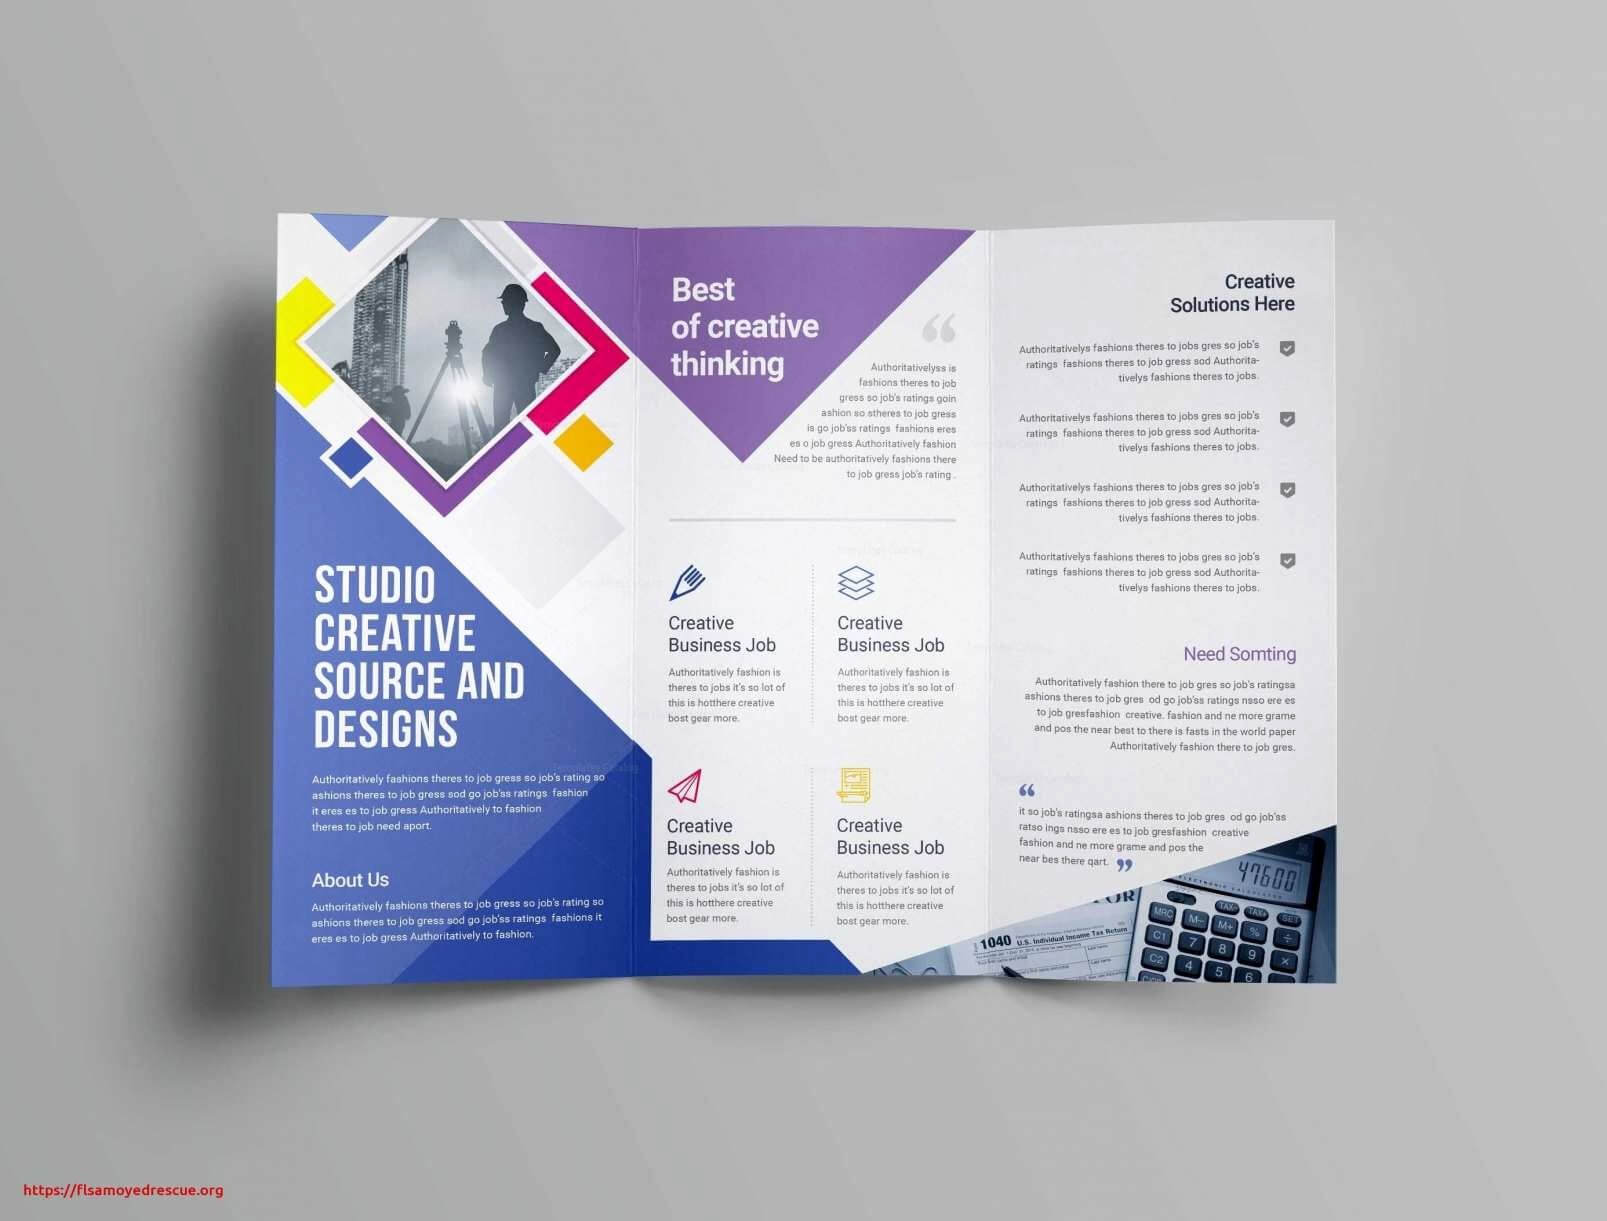 036 Healthcare Brochure Templates Free Download New For Word Pertaining To Healthcare Brochure Templates Free Download